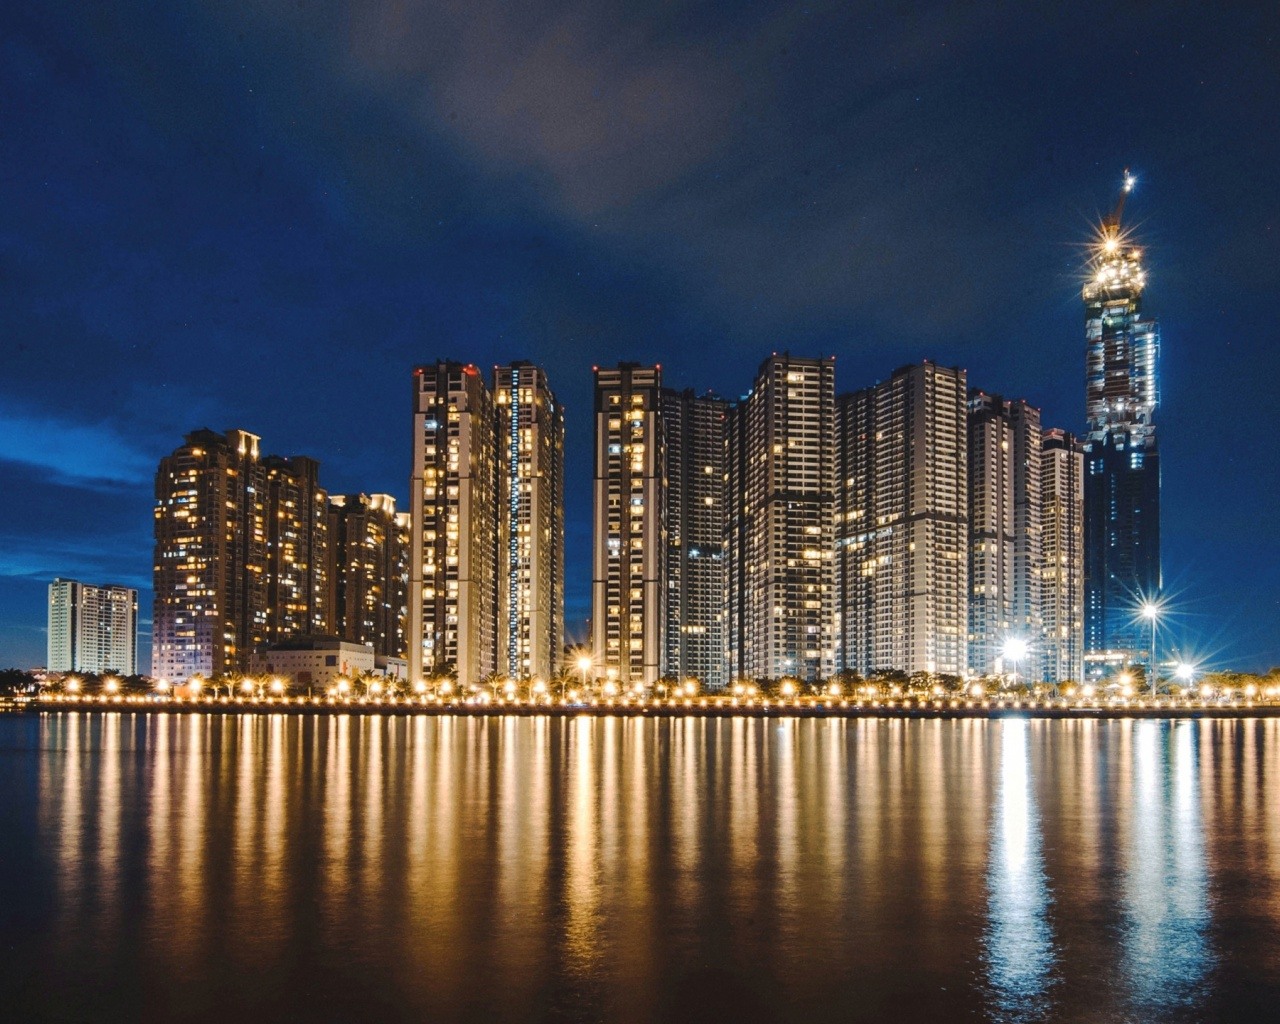 1280x1024 night city, panorama, shore